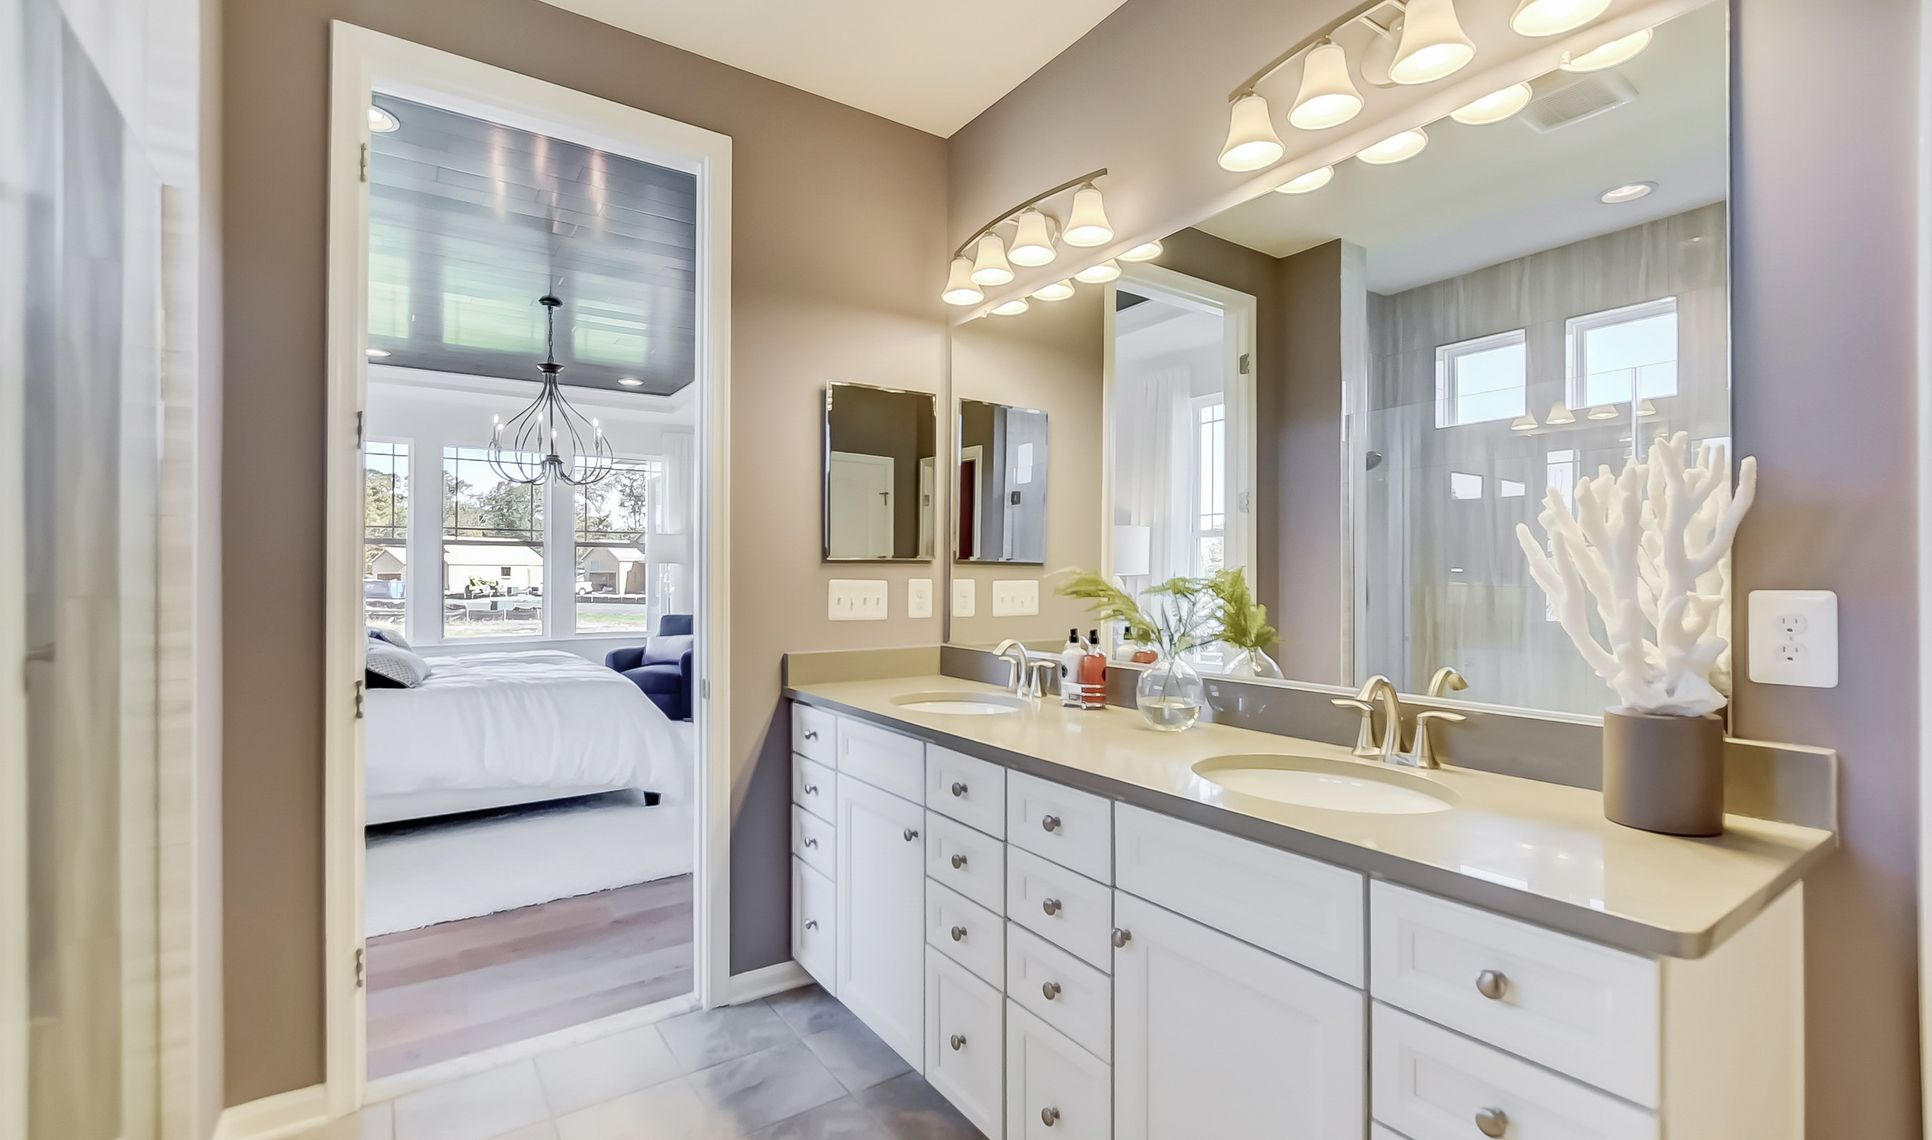 Interior:Relaxing owner's bath